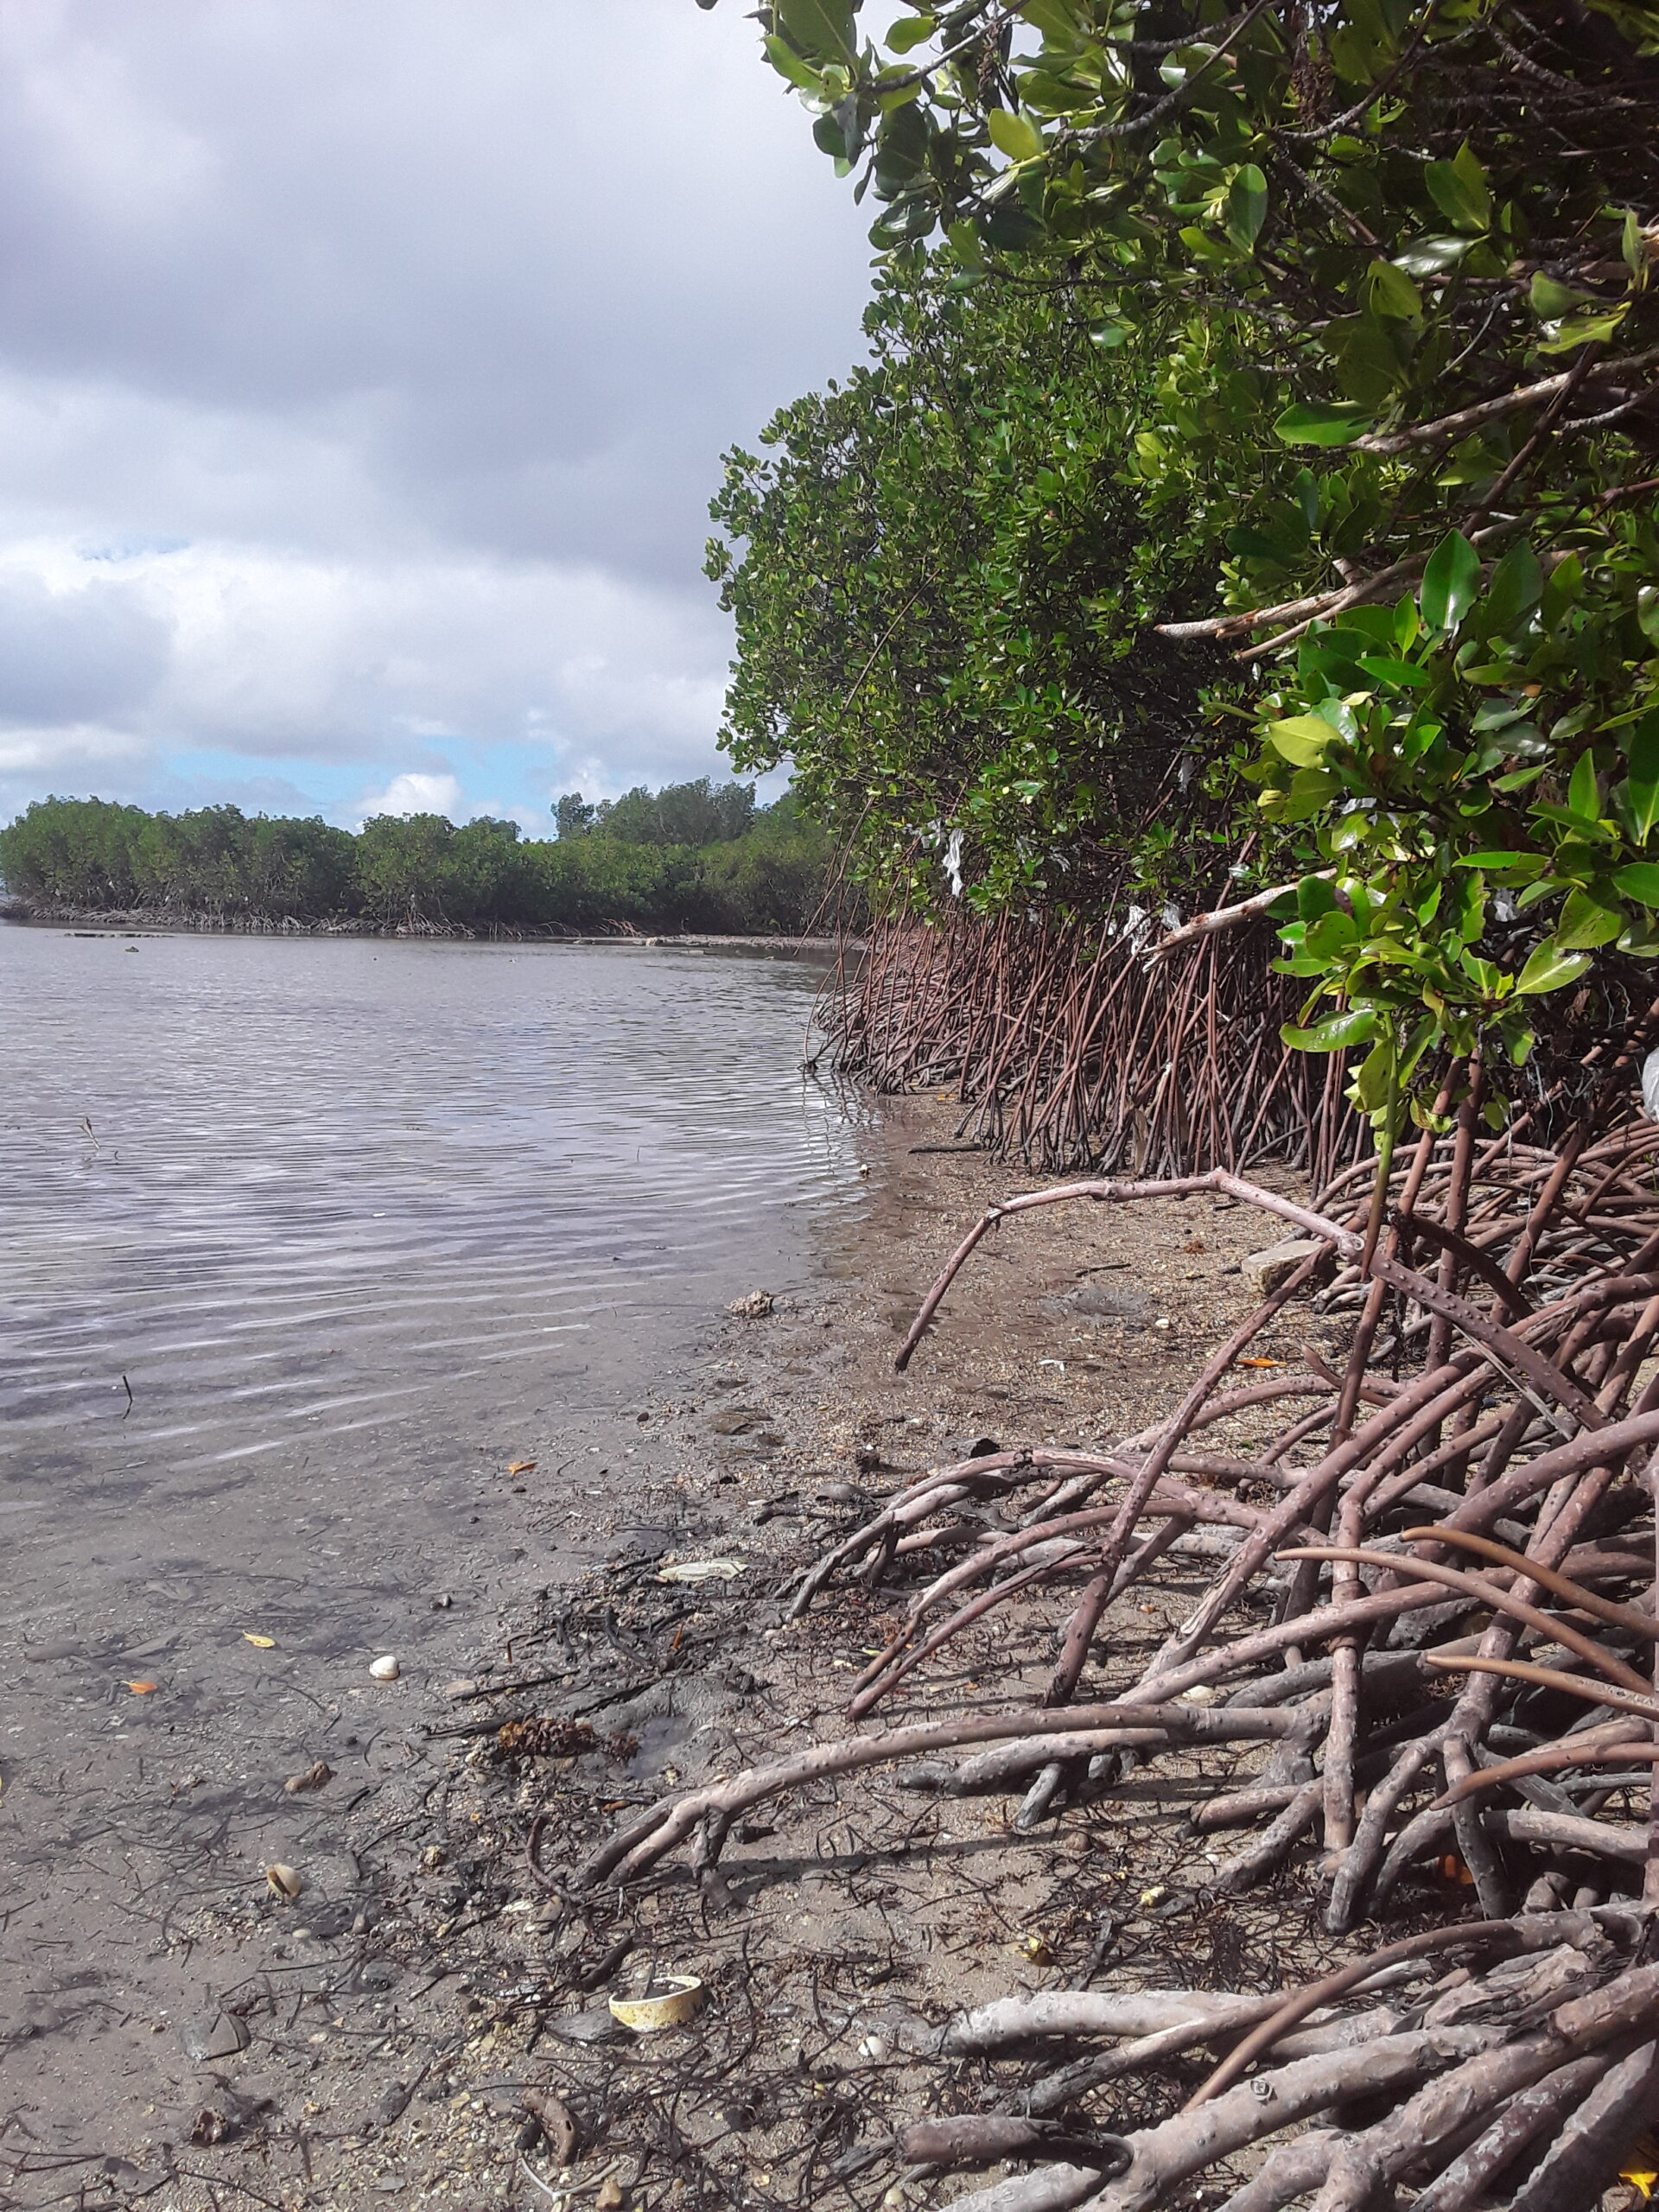 Experts share critical lessons on saving mangroves